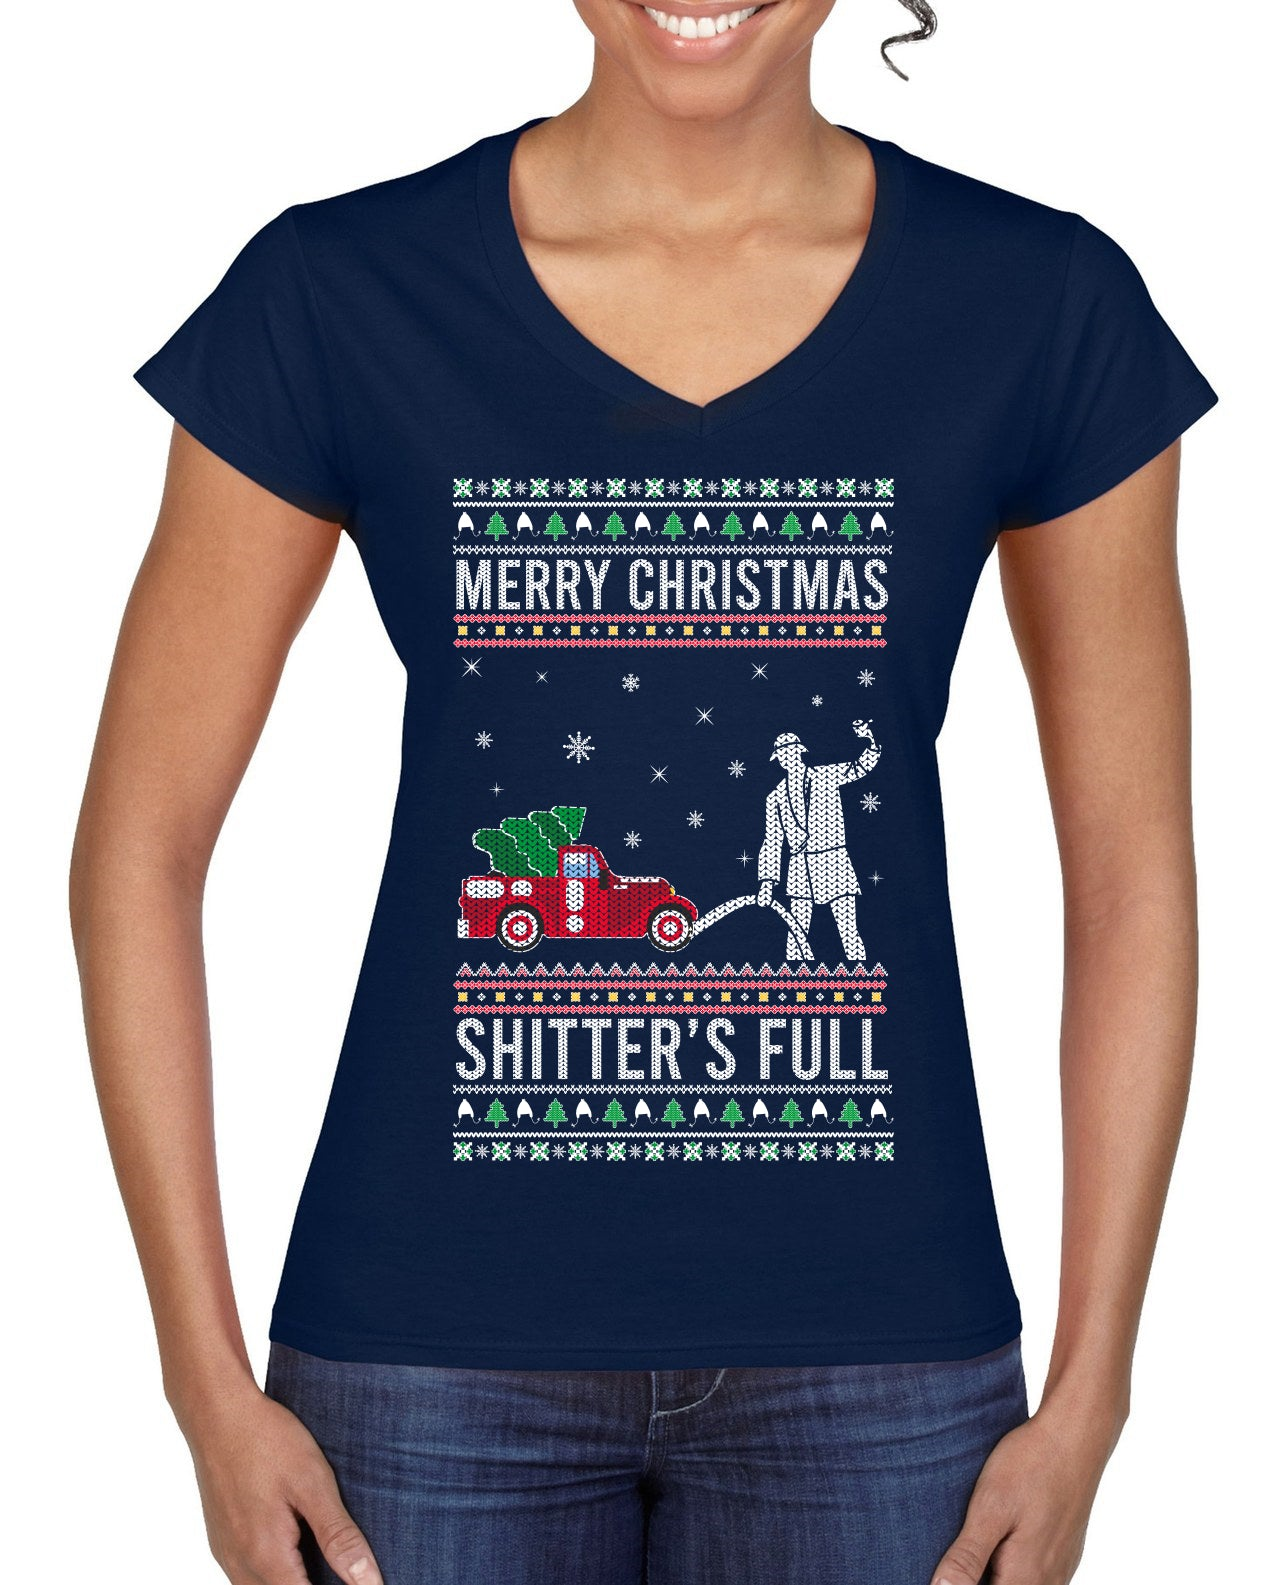 Merry Christmas Shitter's Full Christmas Vacation Ugly Christmas Sweater Women's Standard V-Neck Tee